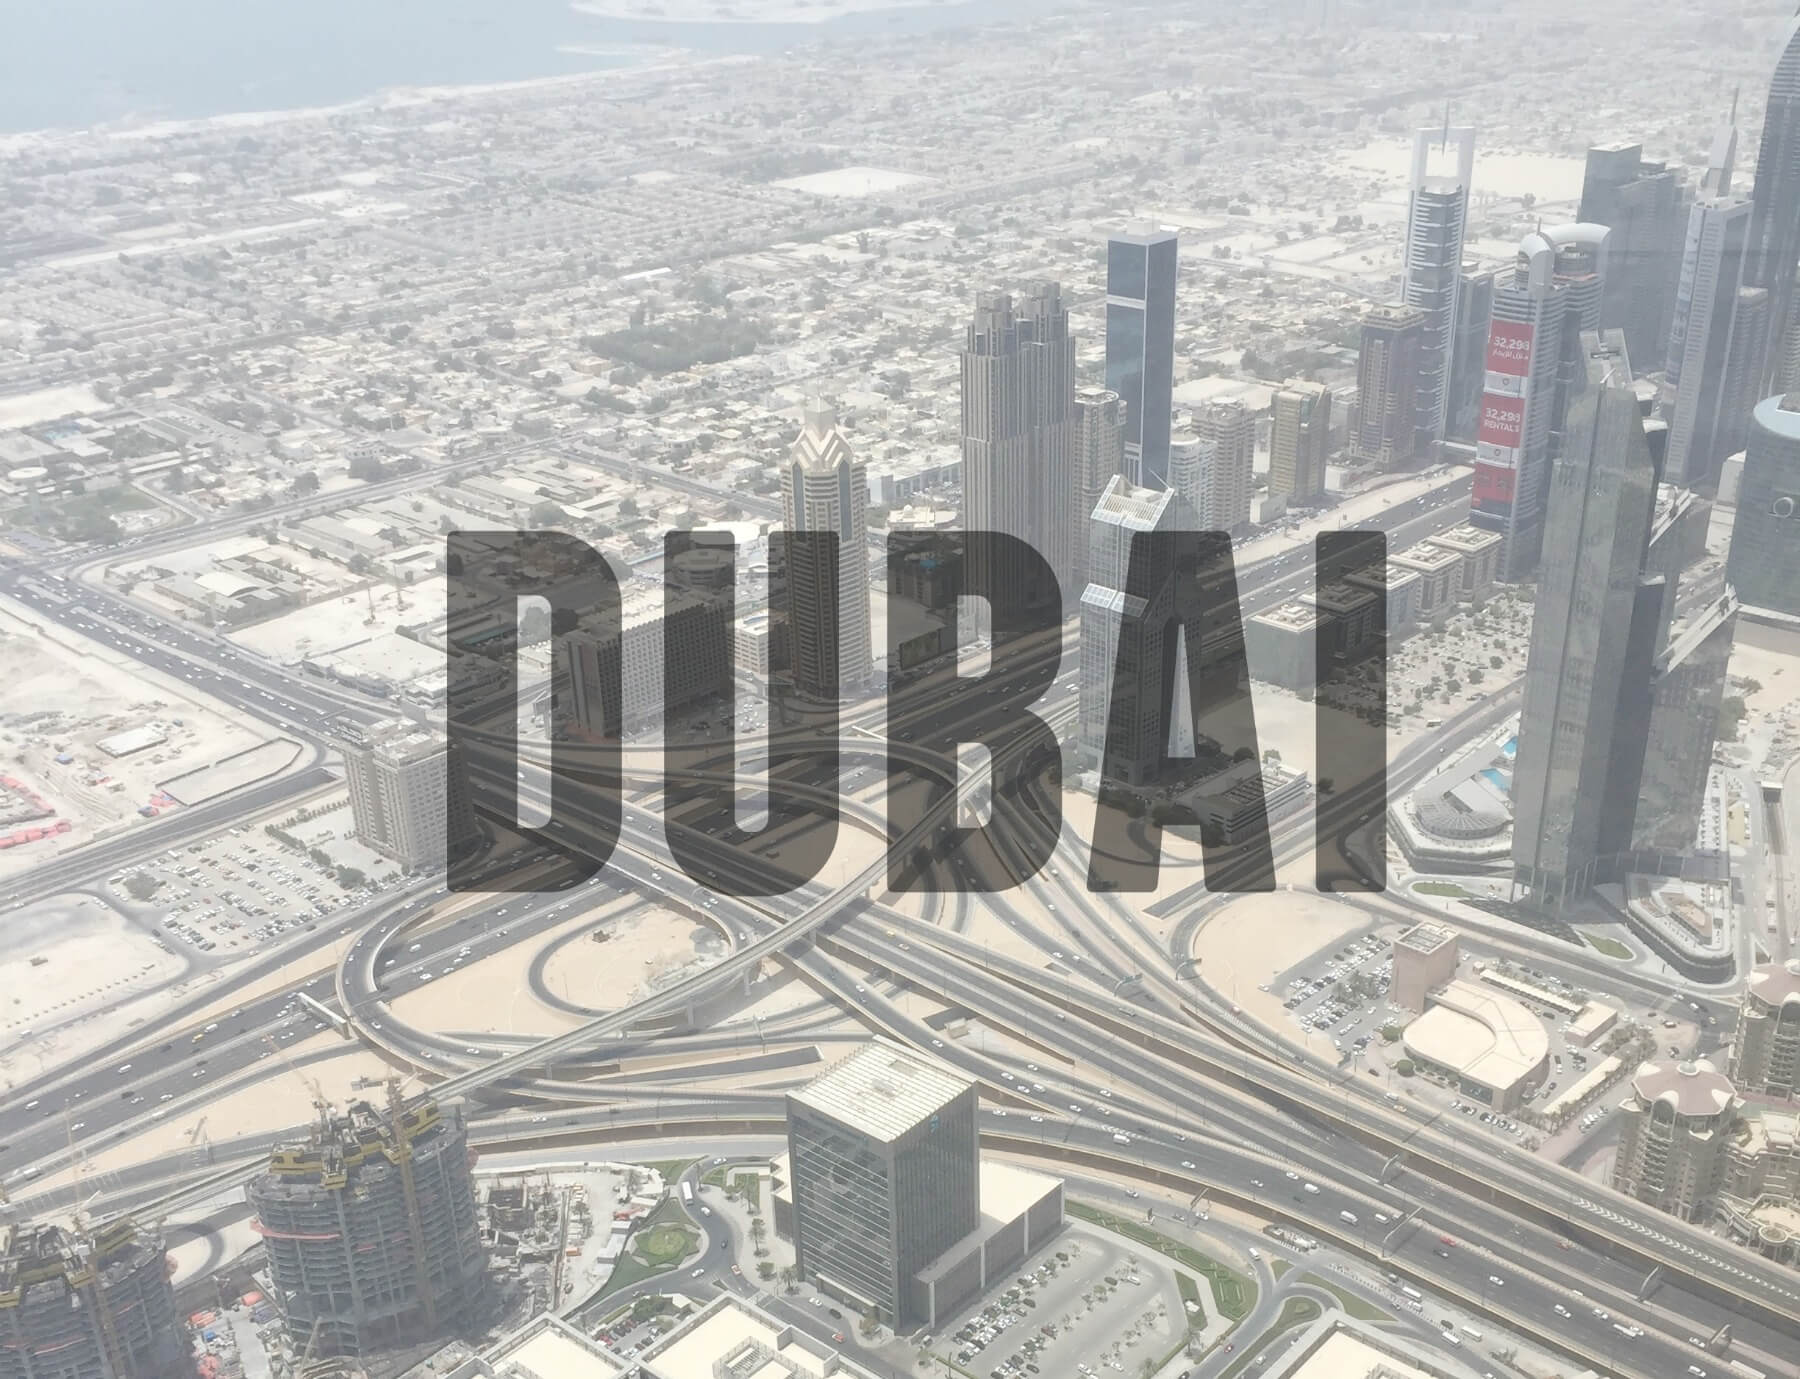 View from the top of the Burj Khalifa with text overlay - Dubai